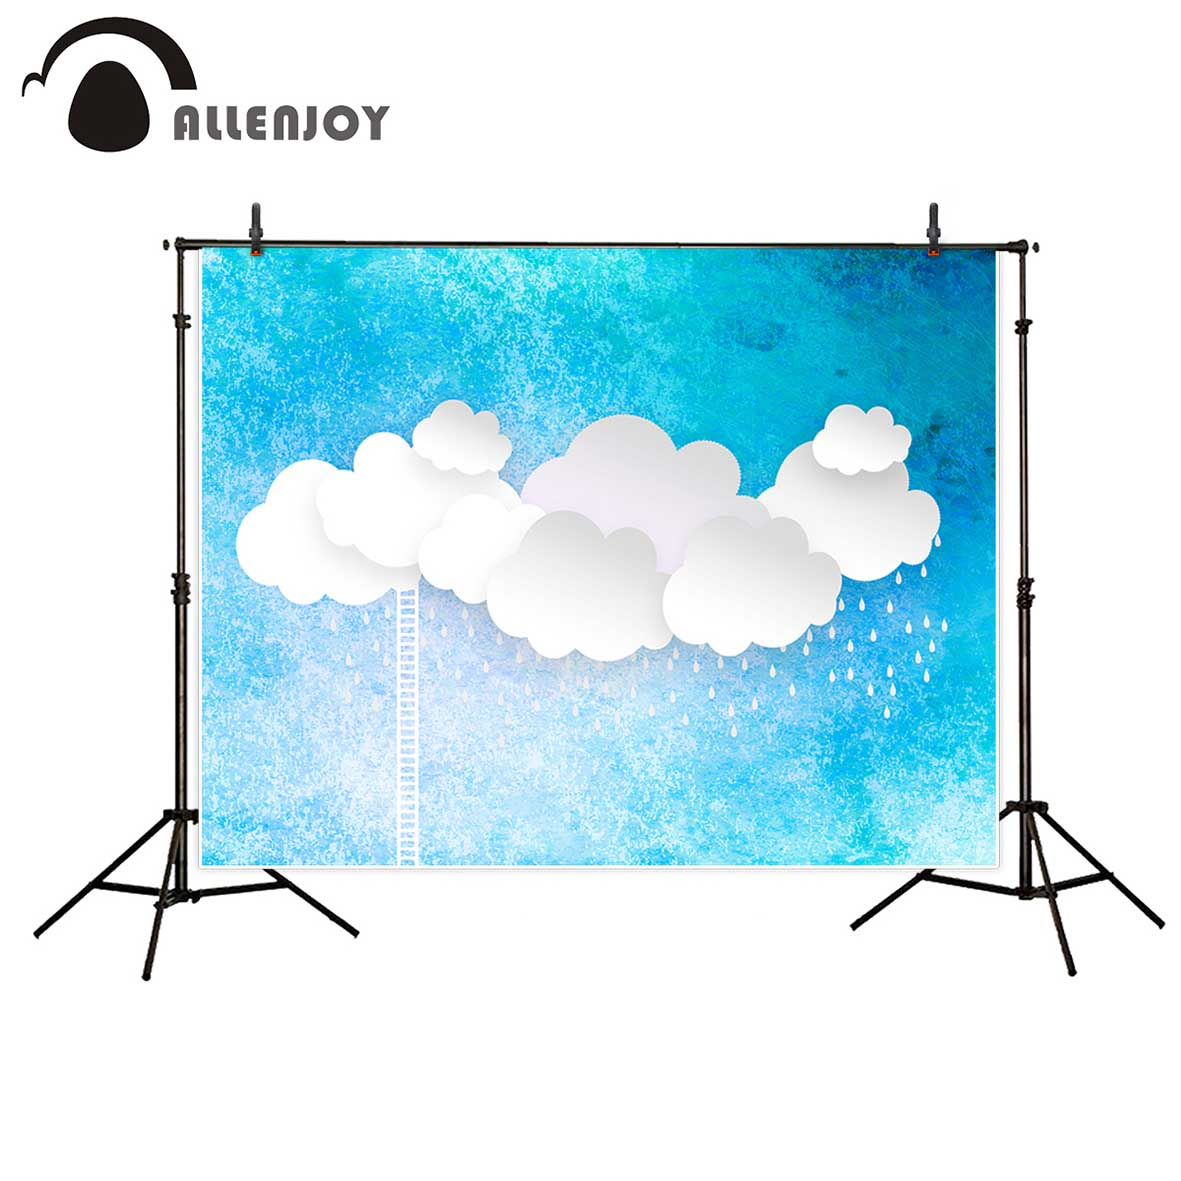 kate baby birthday cake background newborn children backdrop seamless blue photos for photos studio shoot Allenjoy photography background Blue sky white clouds ladder raindrops backdrop for new born baby Shoot Photo background studio